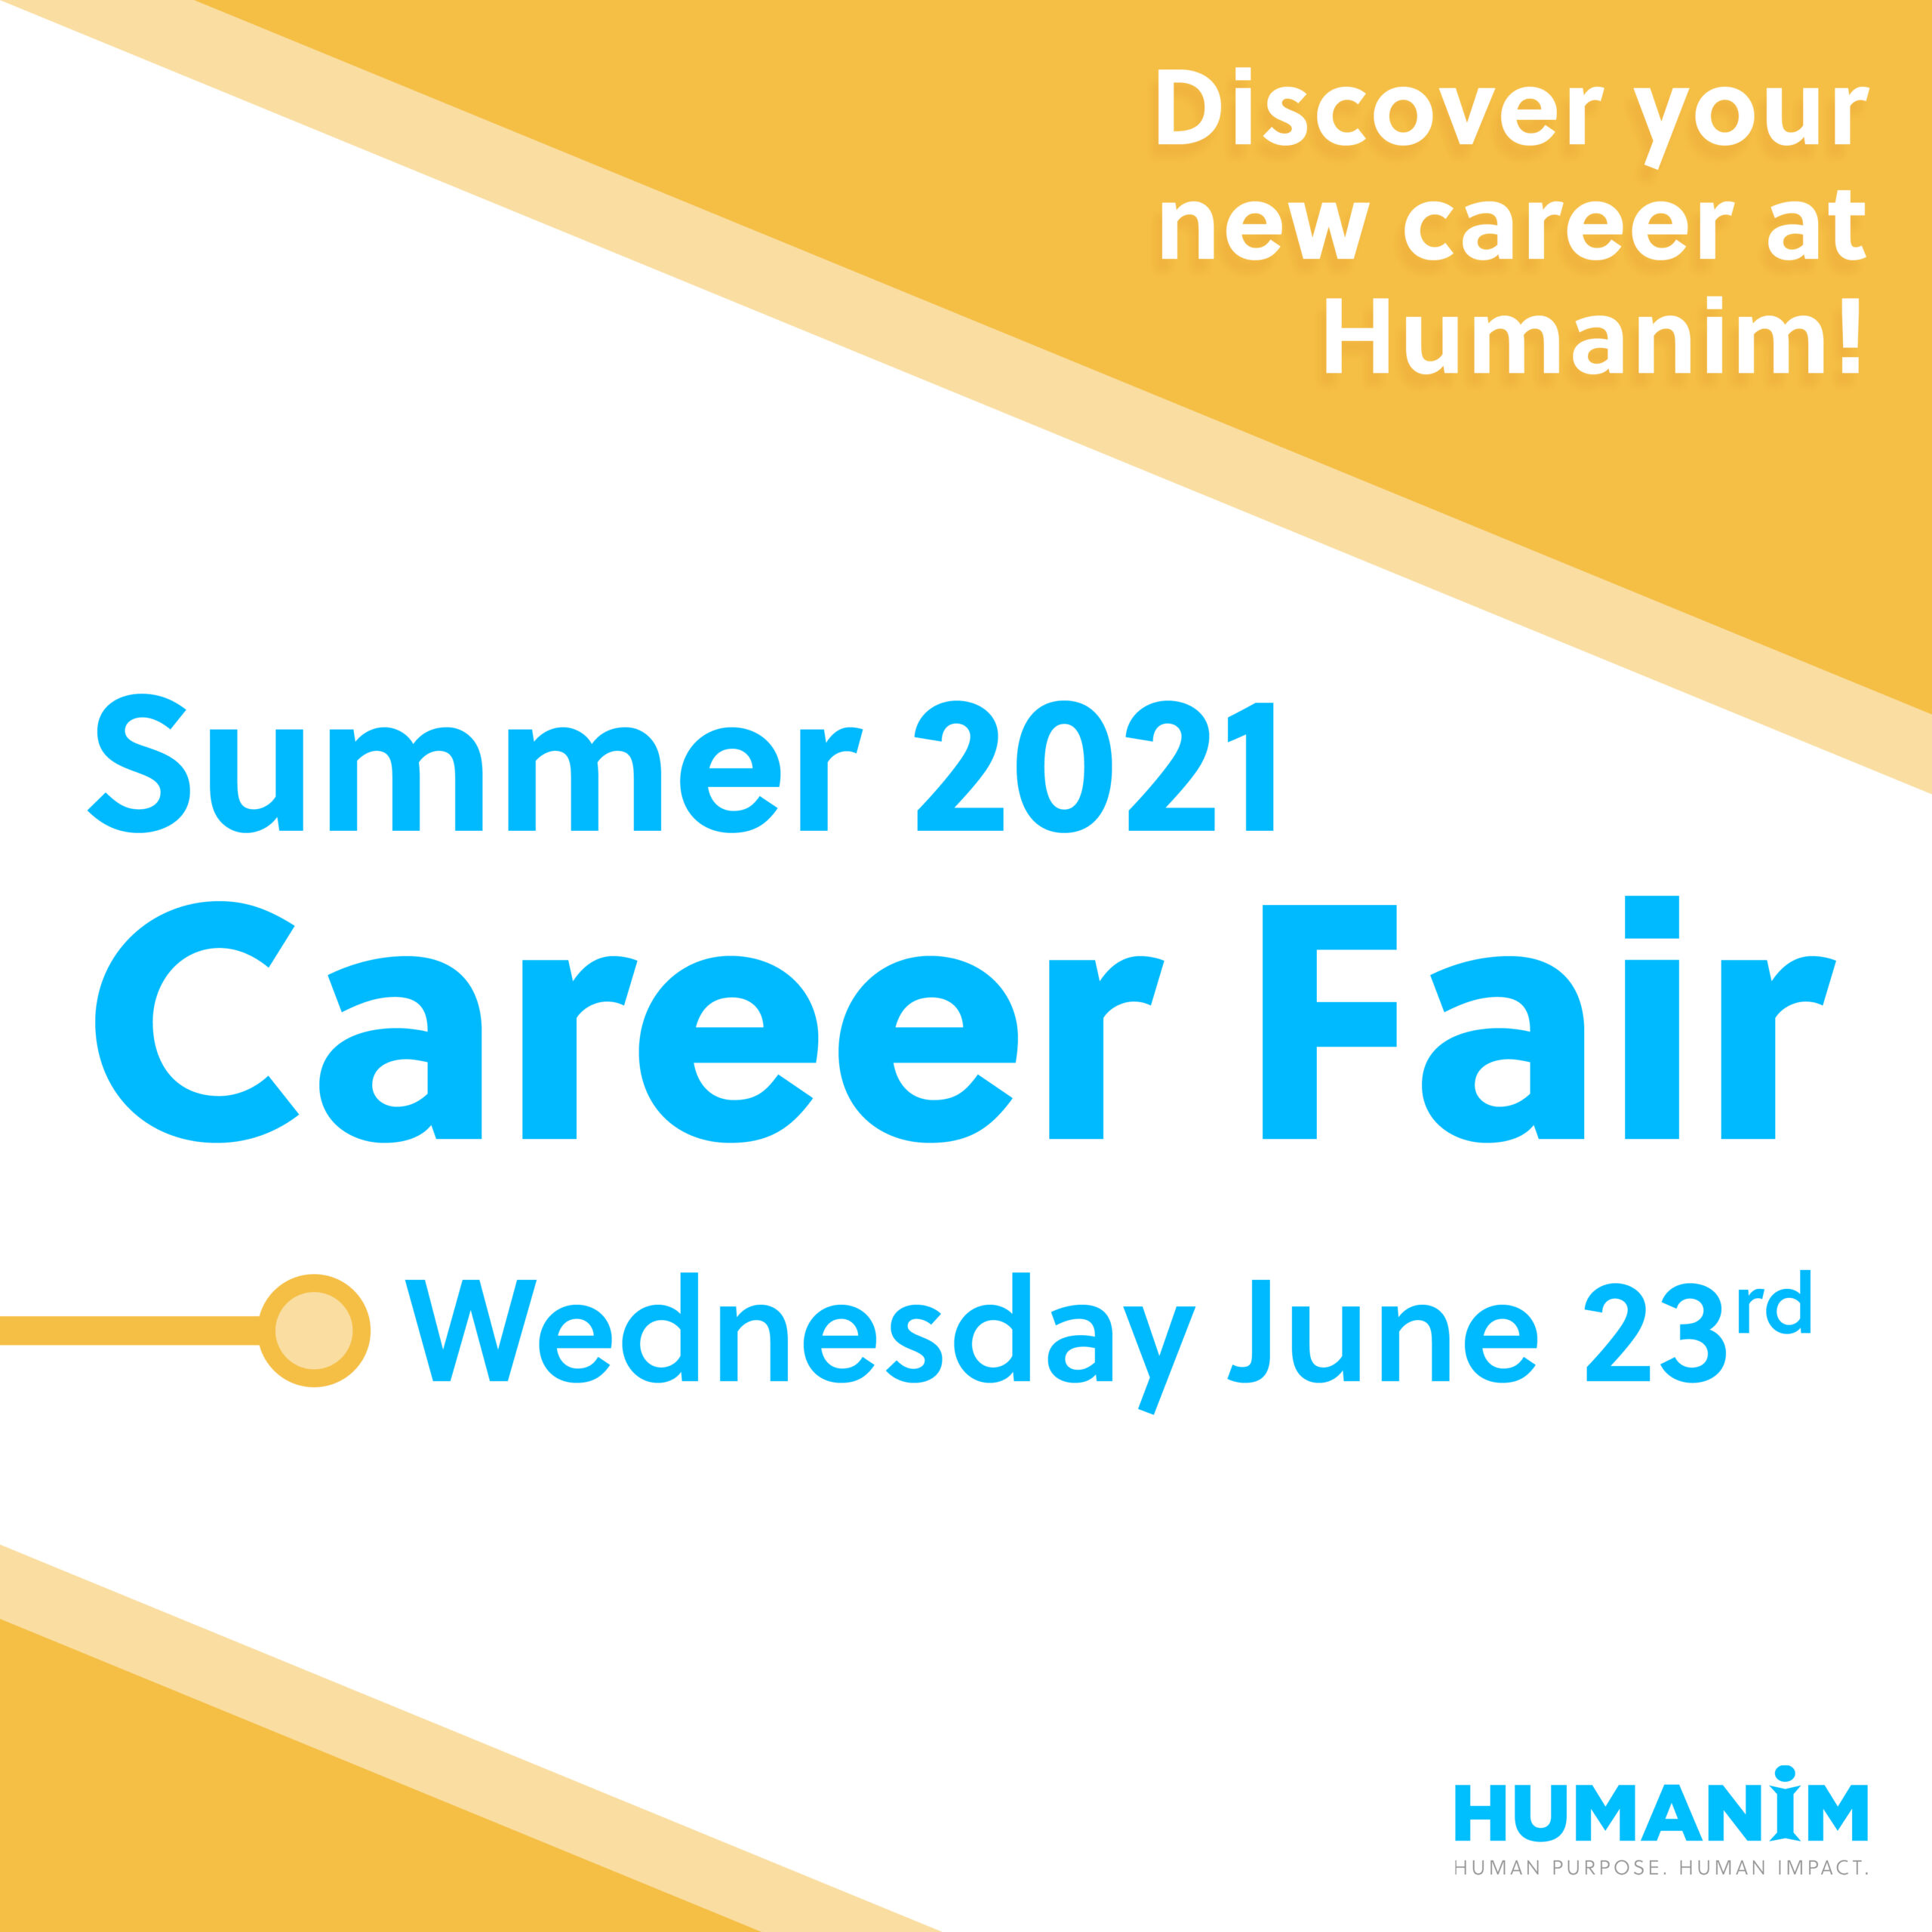 Summer 2021 Career Fair